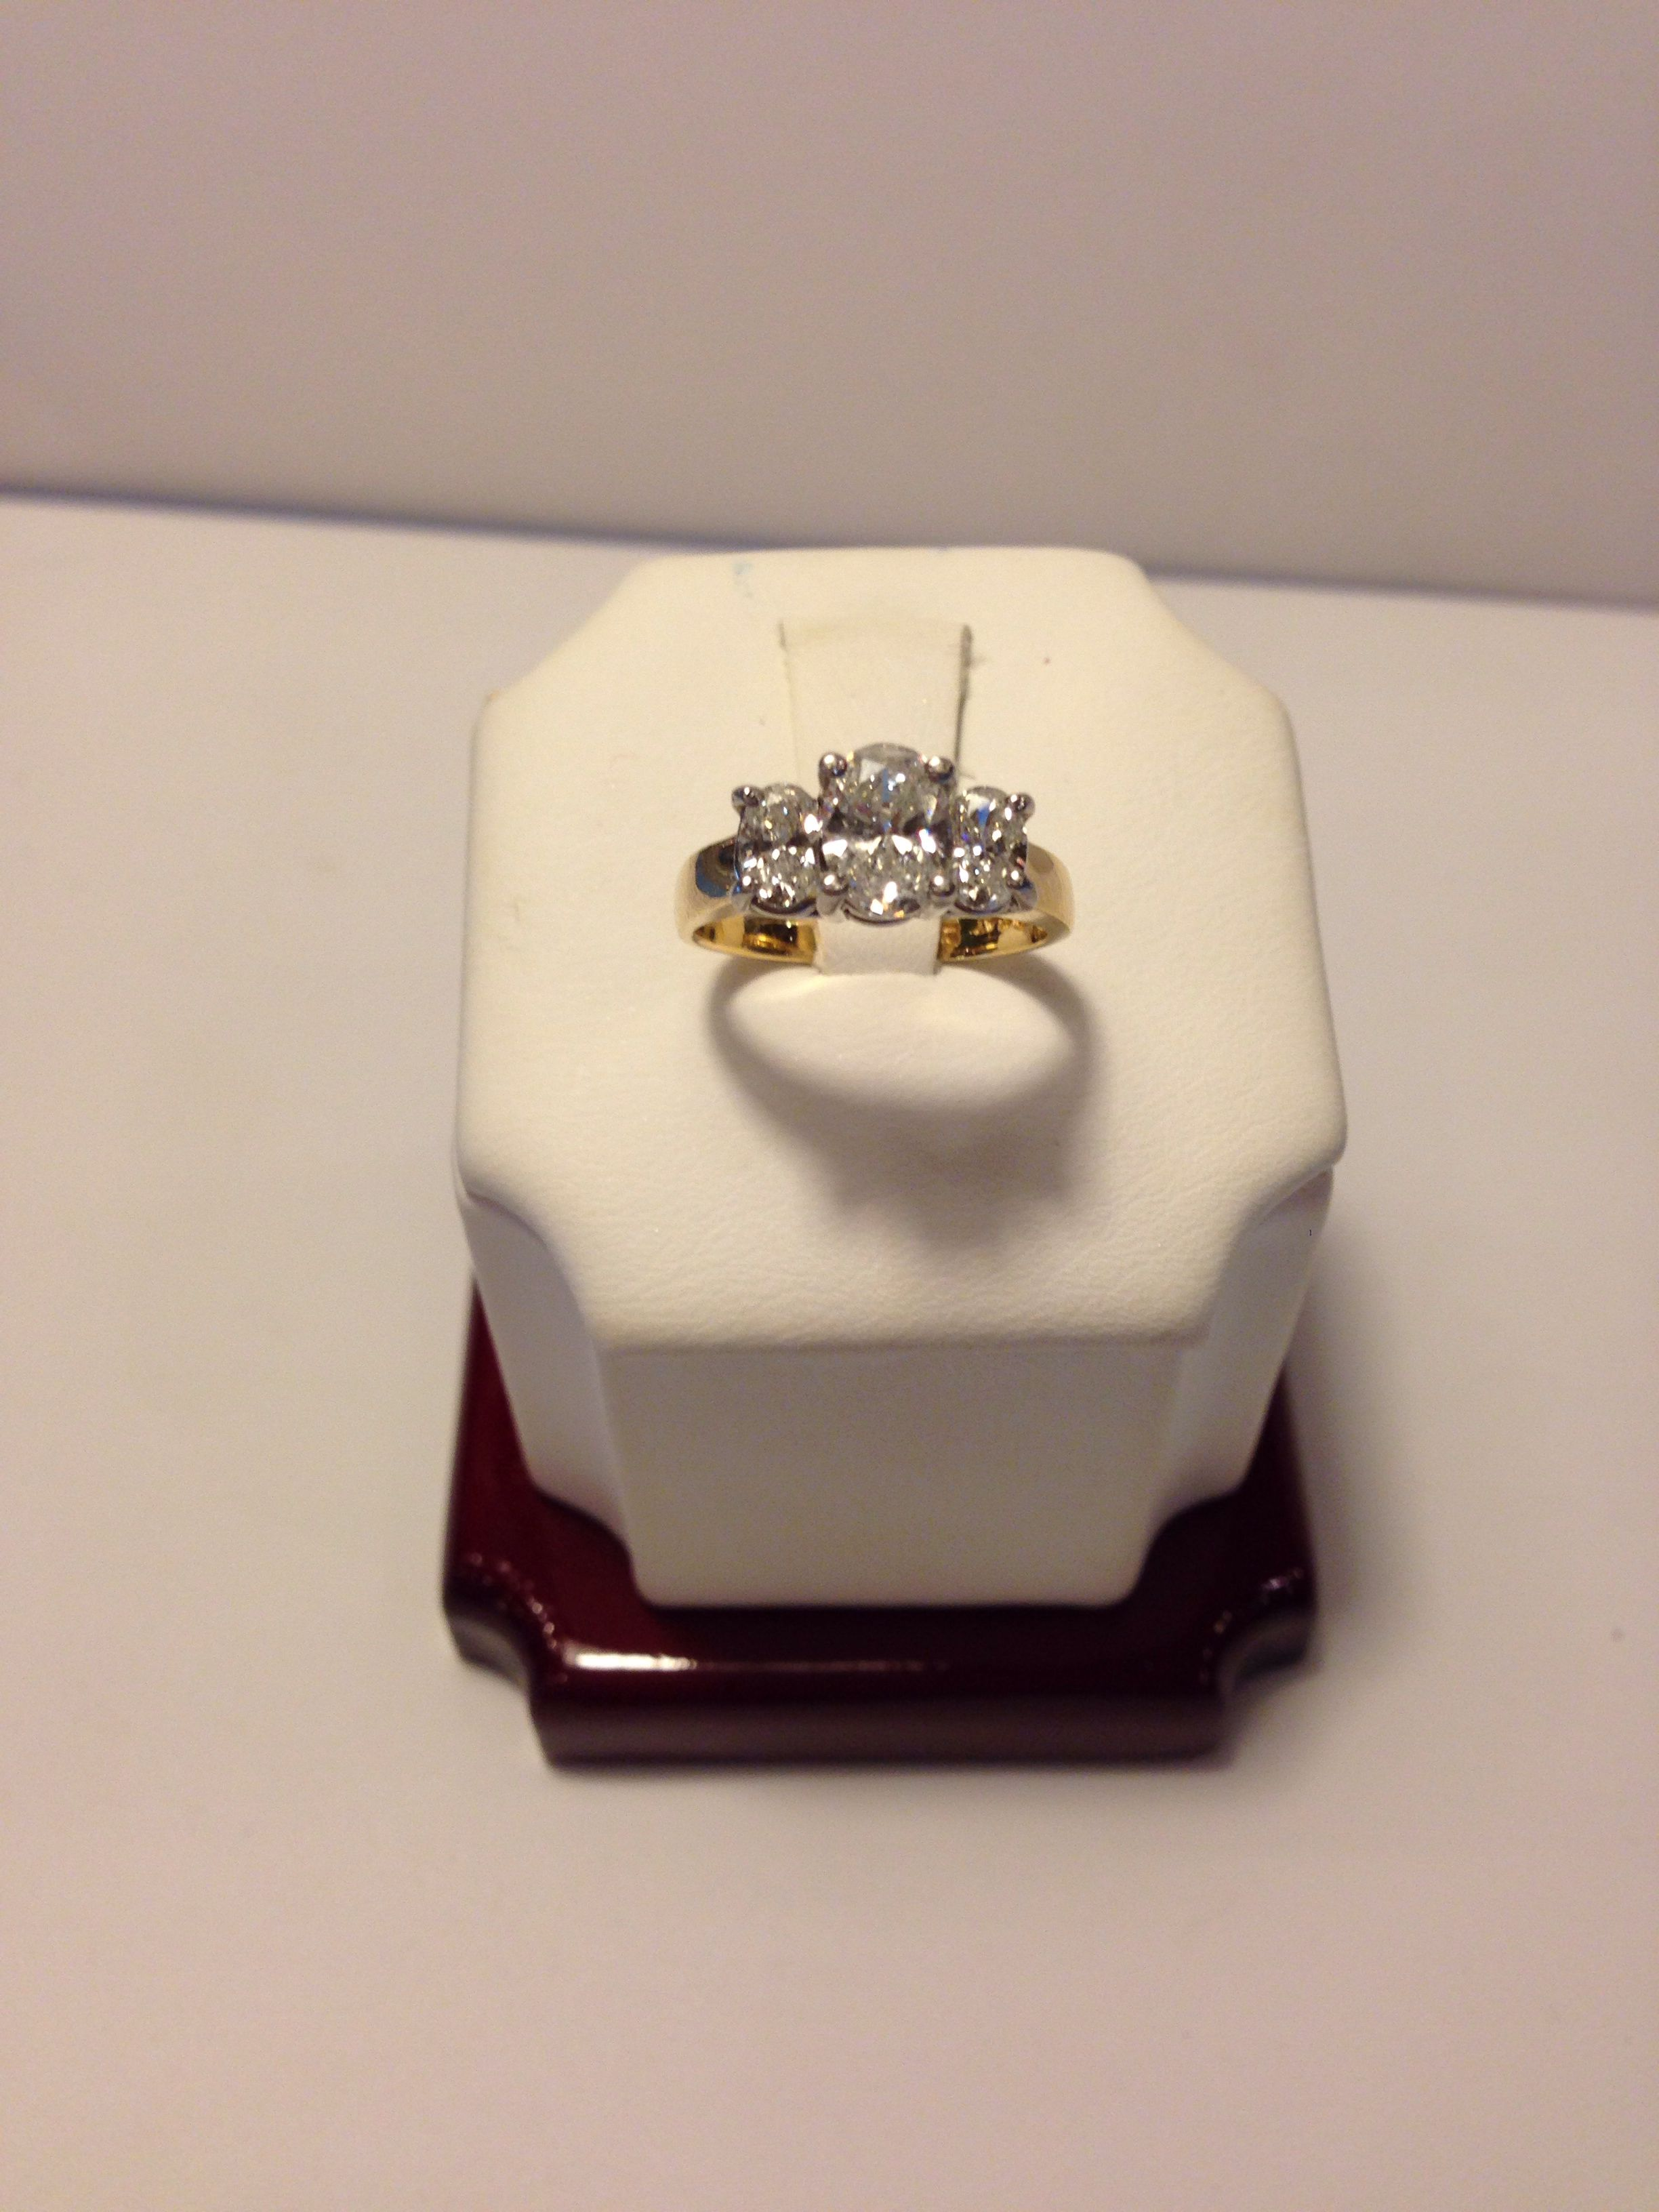 14k yellow gold Diamond Ring. Center stone approximately 60 points (slightly over a half carat)- SI2. Side stones approximately 20 points each (slightly under a half carat total)- I-H. Total approximate diamond weight- 1 carat. Only $1600!